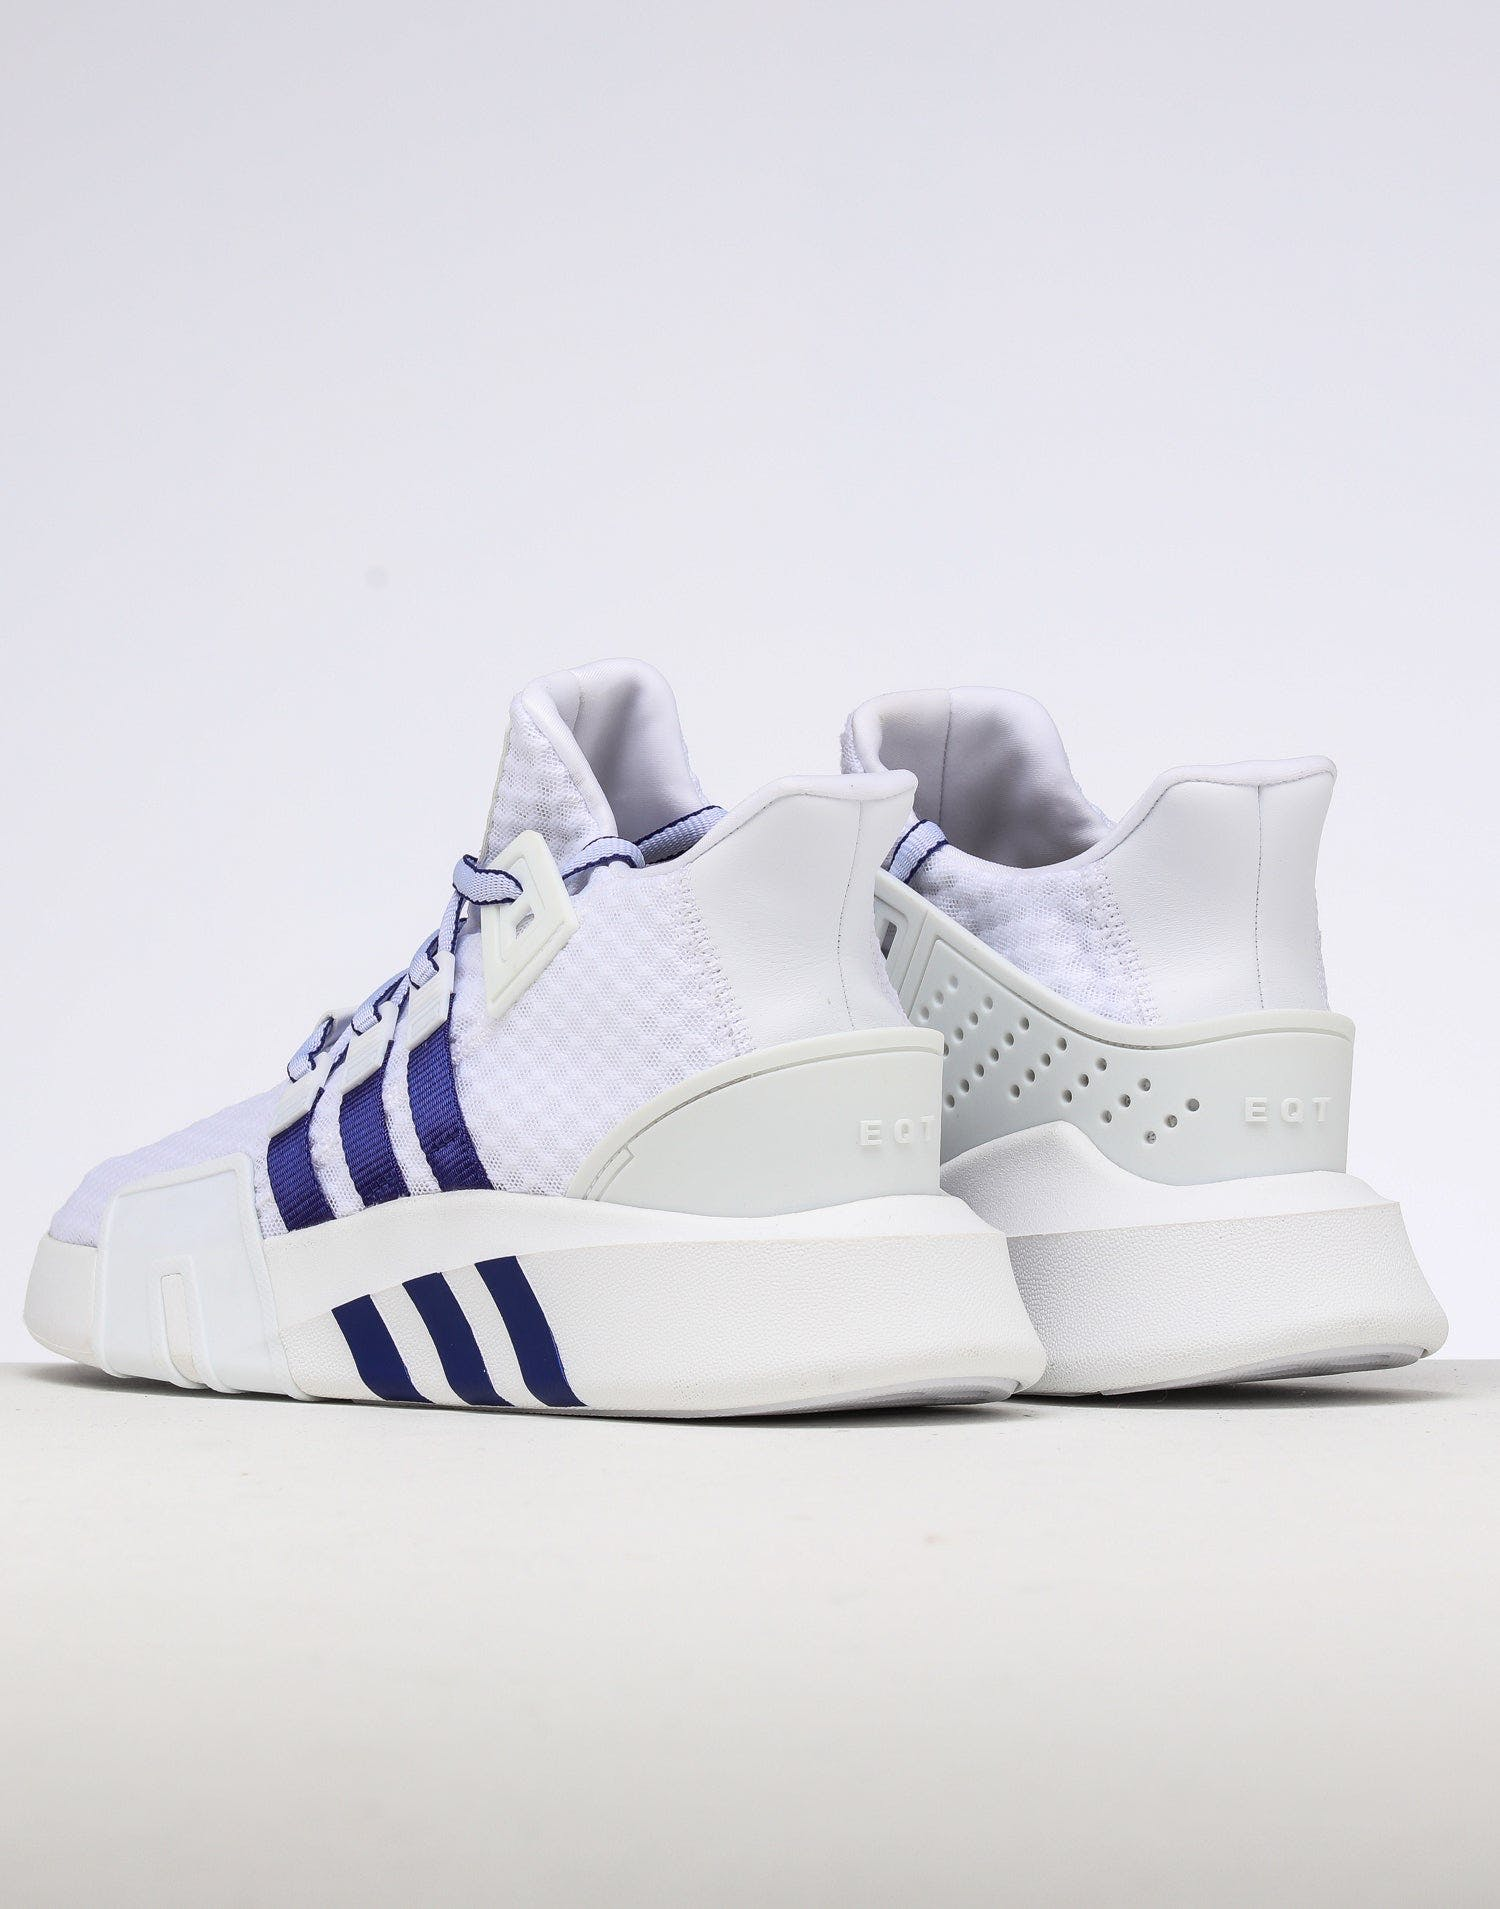 Perenne Reorganizar apoyo  Adidas EQT Bask ADV White/Blue/Black | Culture Kings US